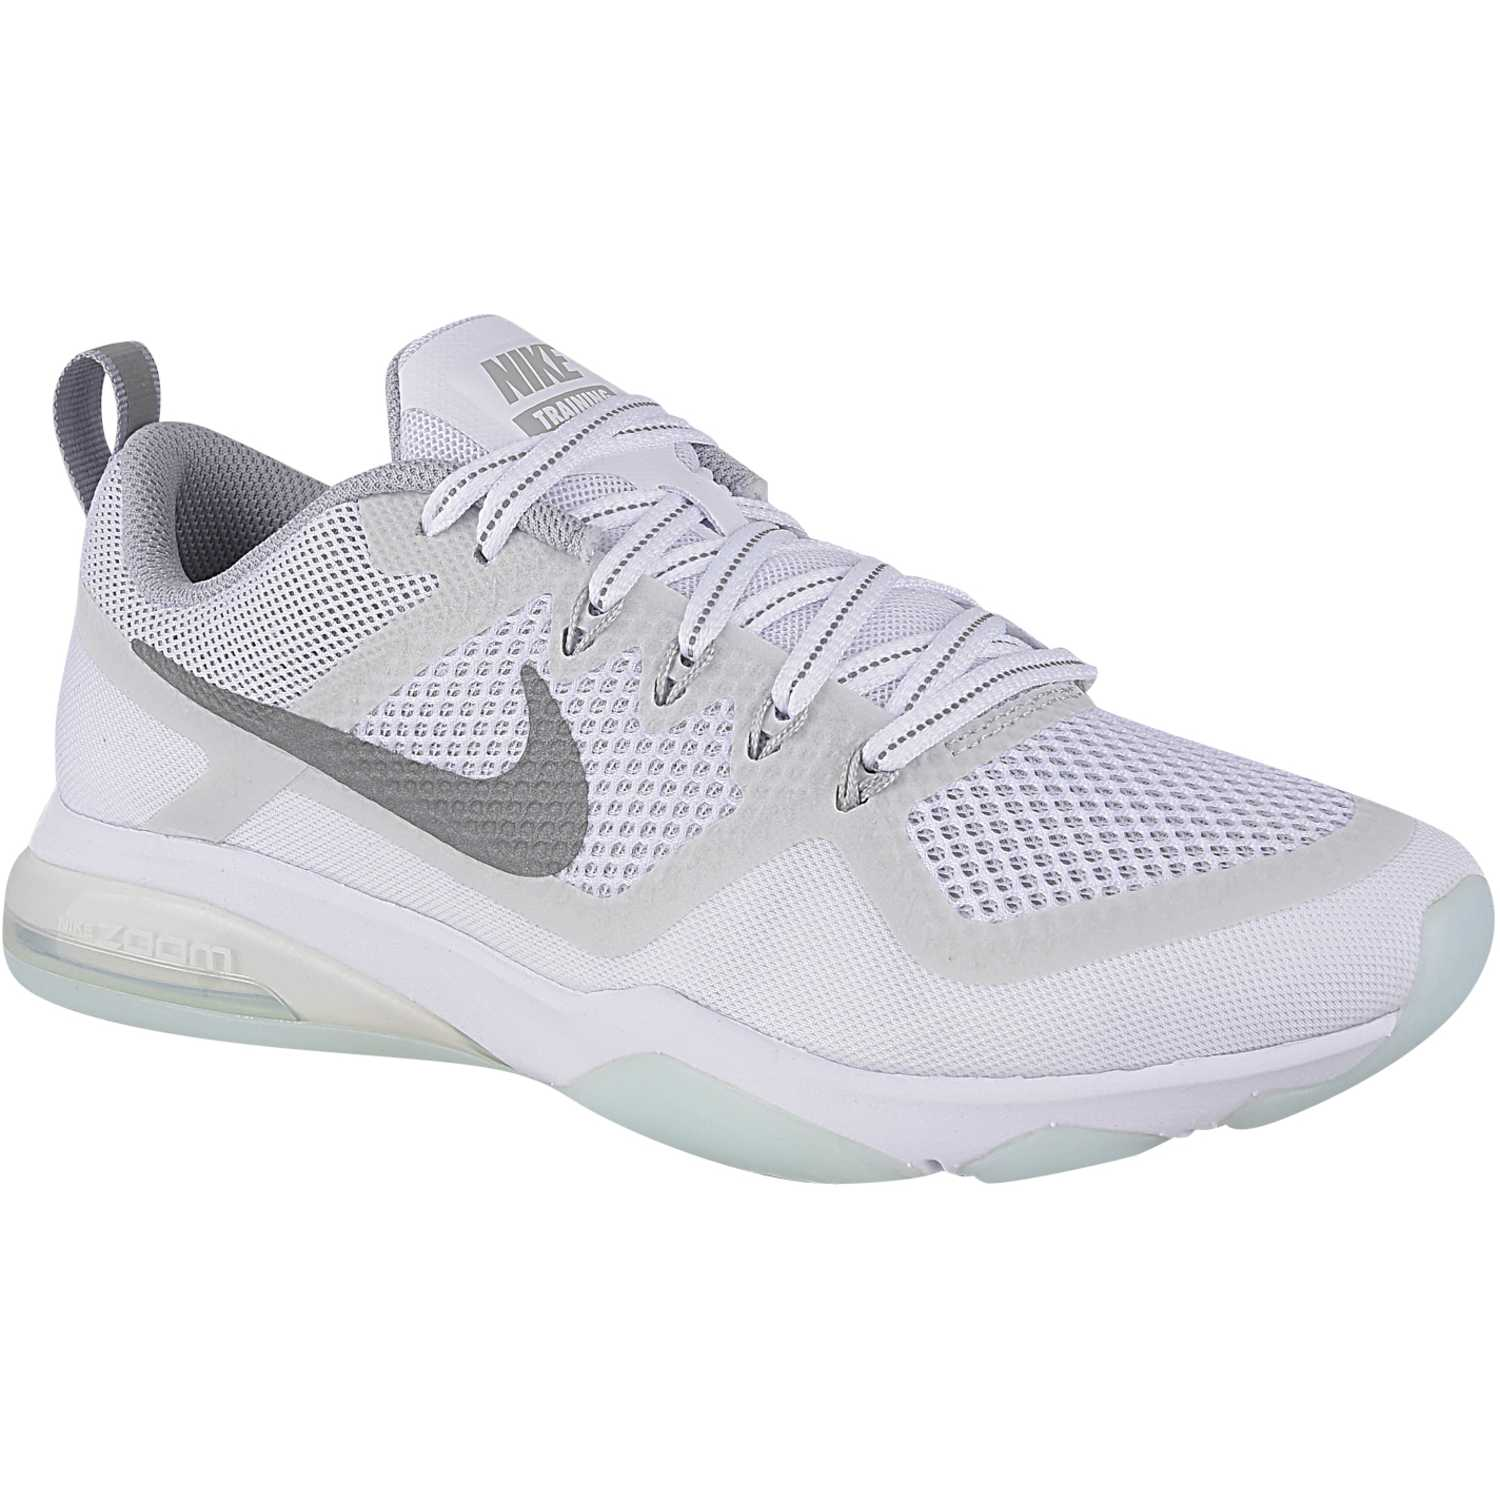 0c3475765ce2b Zapatilla de Mujer Nike Blanco   gris wmns air zoom fitness reflect ...